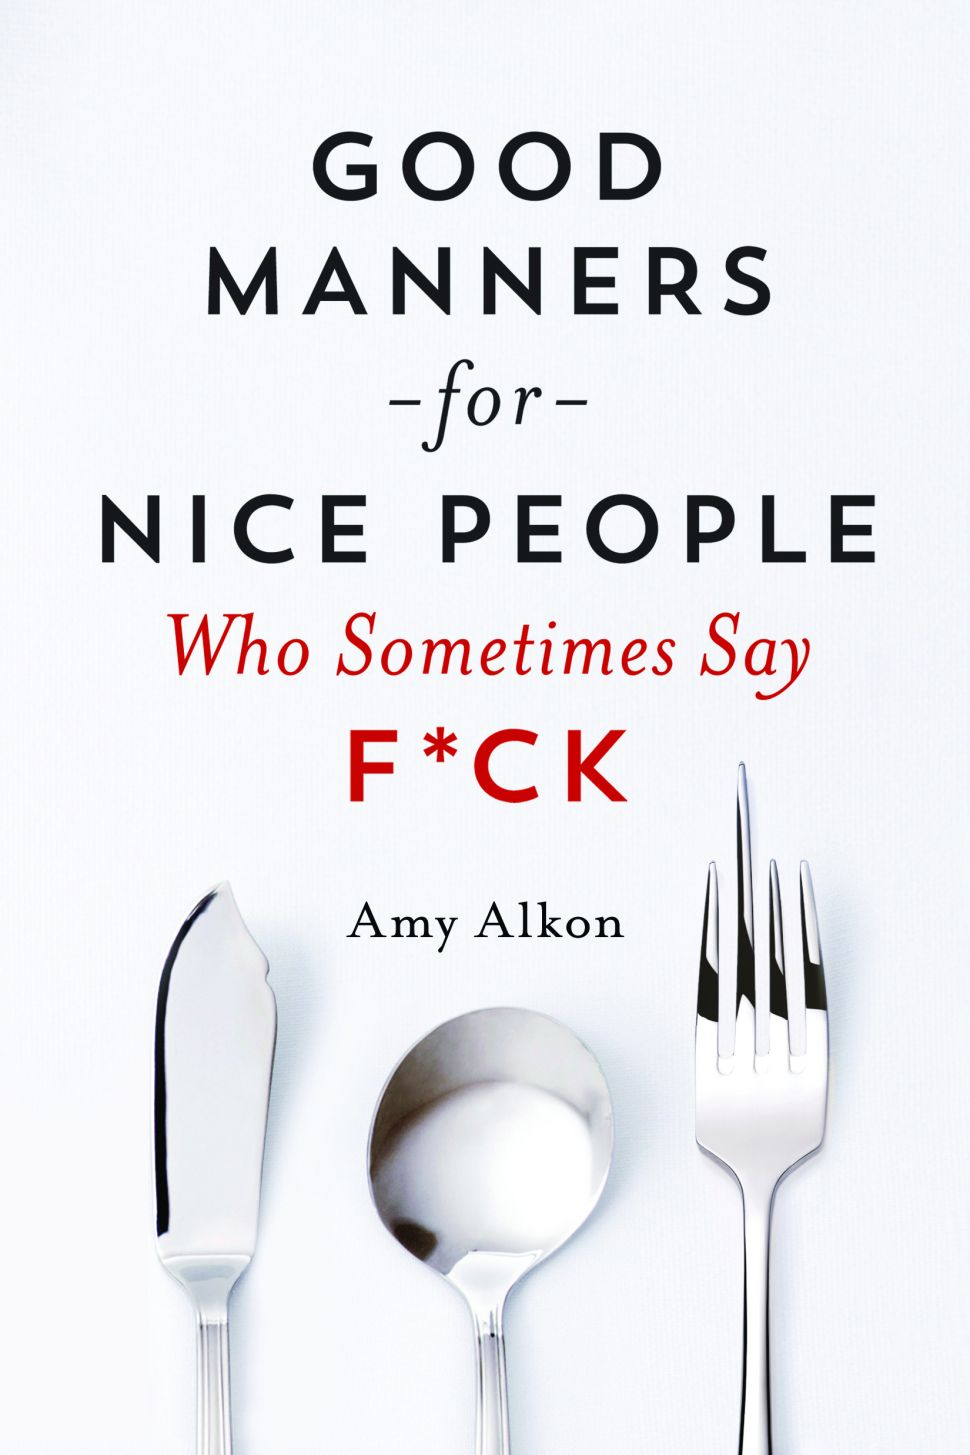 College Students Must Major in Manners